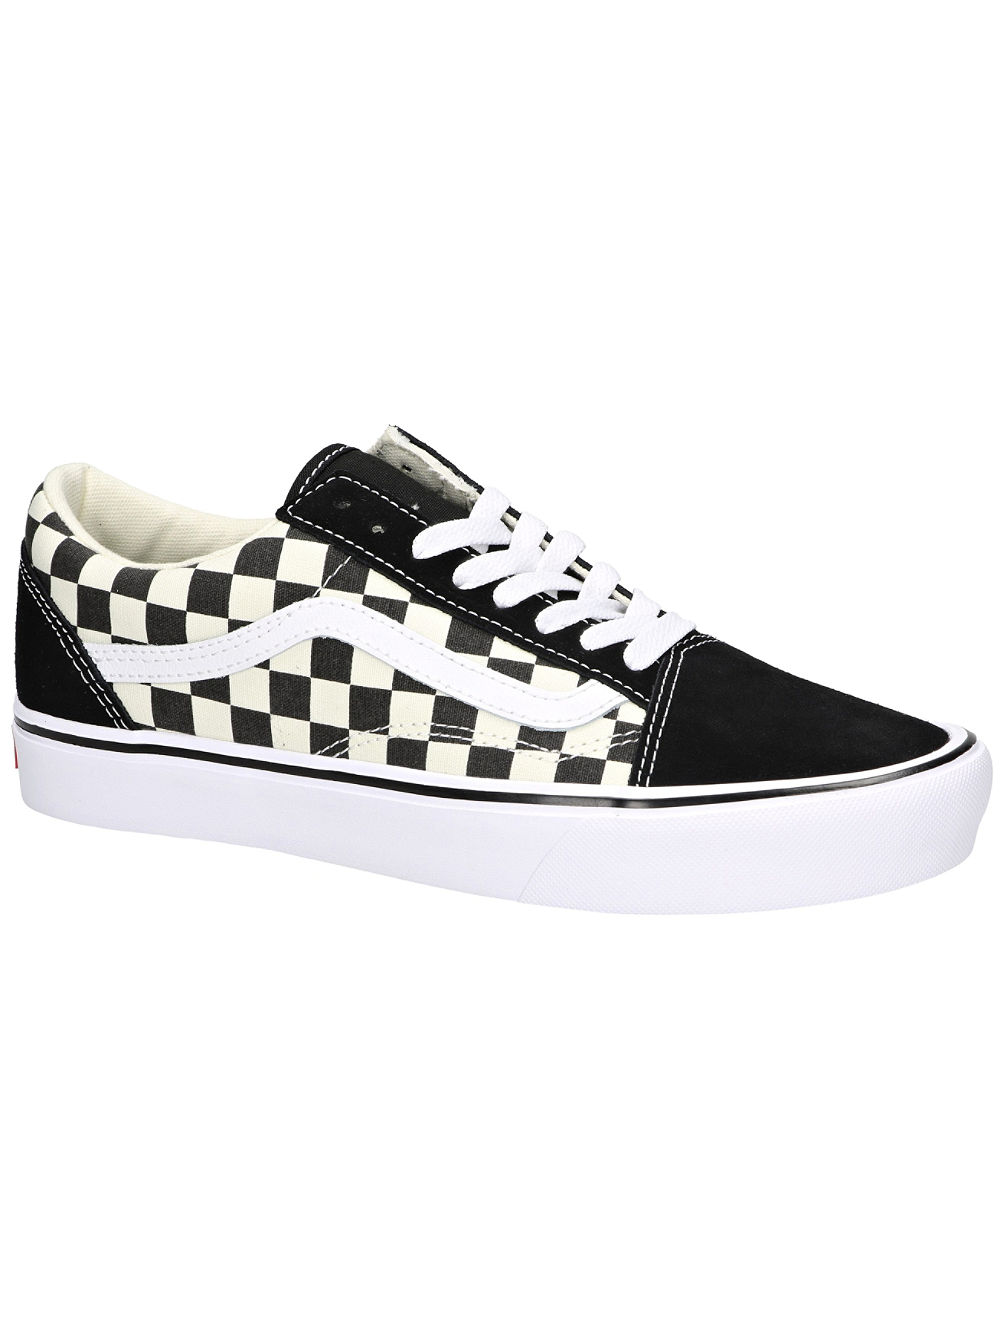 f0fe3dab0dc Buy Vans Checkerboard Old Skool Light Sneakers online at blue-tomato.com